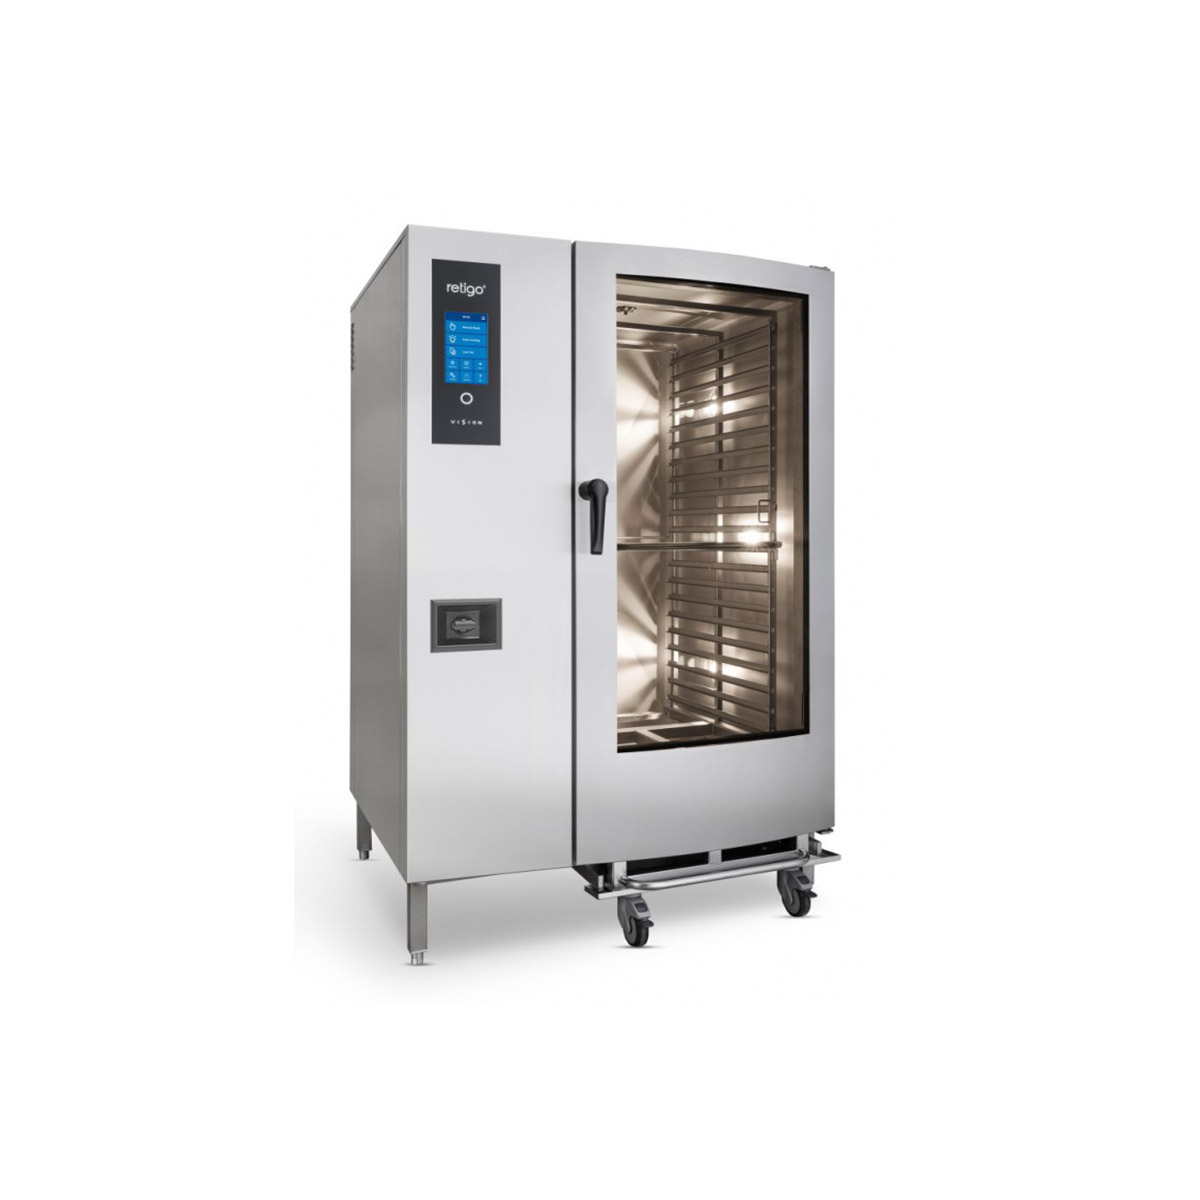 Retigo Blue Vision Combination Oven B2021b